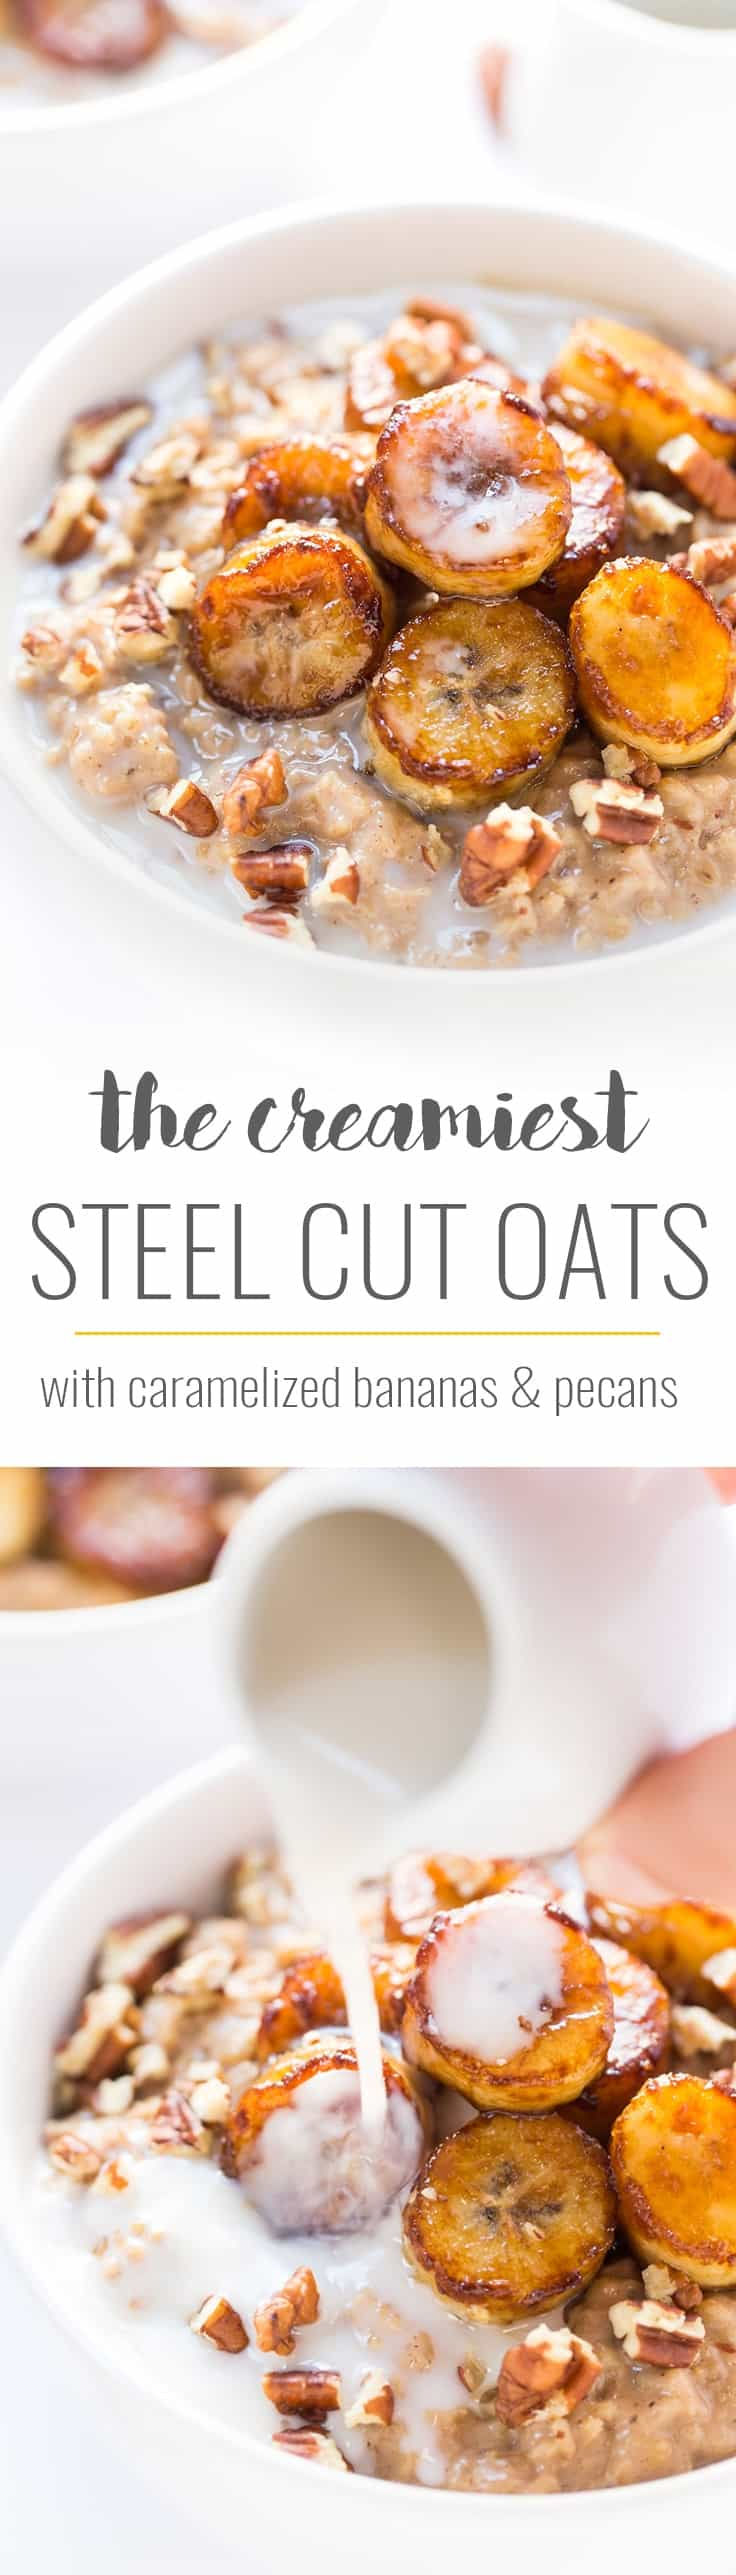 This is my method for making the CREAMIEST steel cut oats on the planet. Served with pan-fried caramelized bananas and pecans, it becomes the ultimate breakfast bowl!